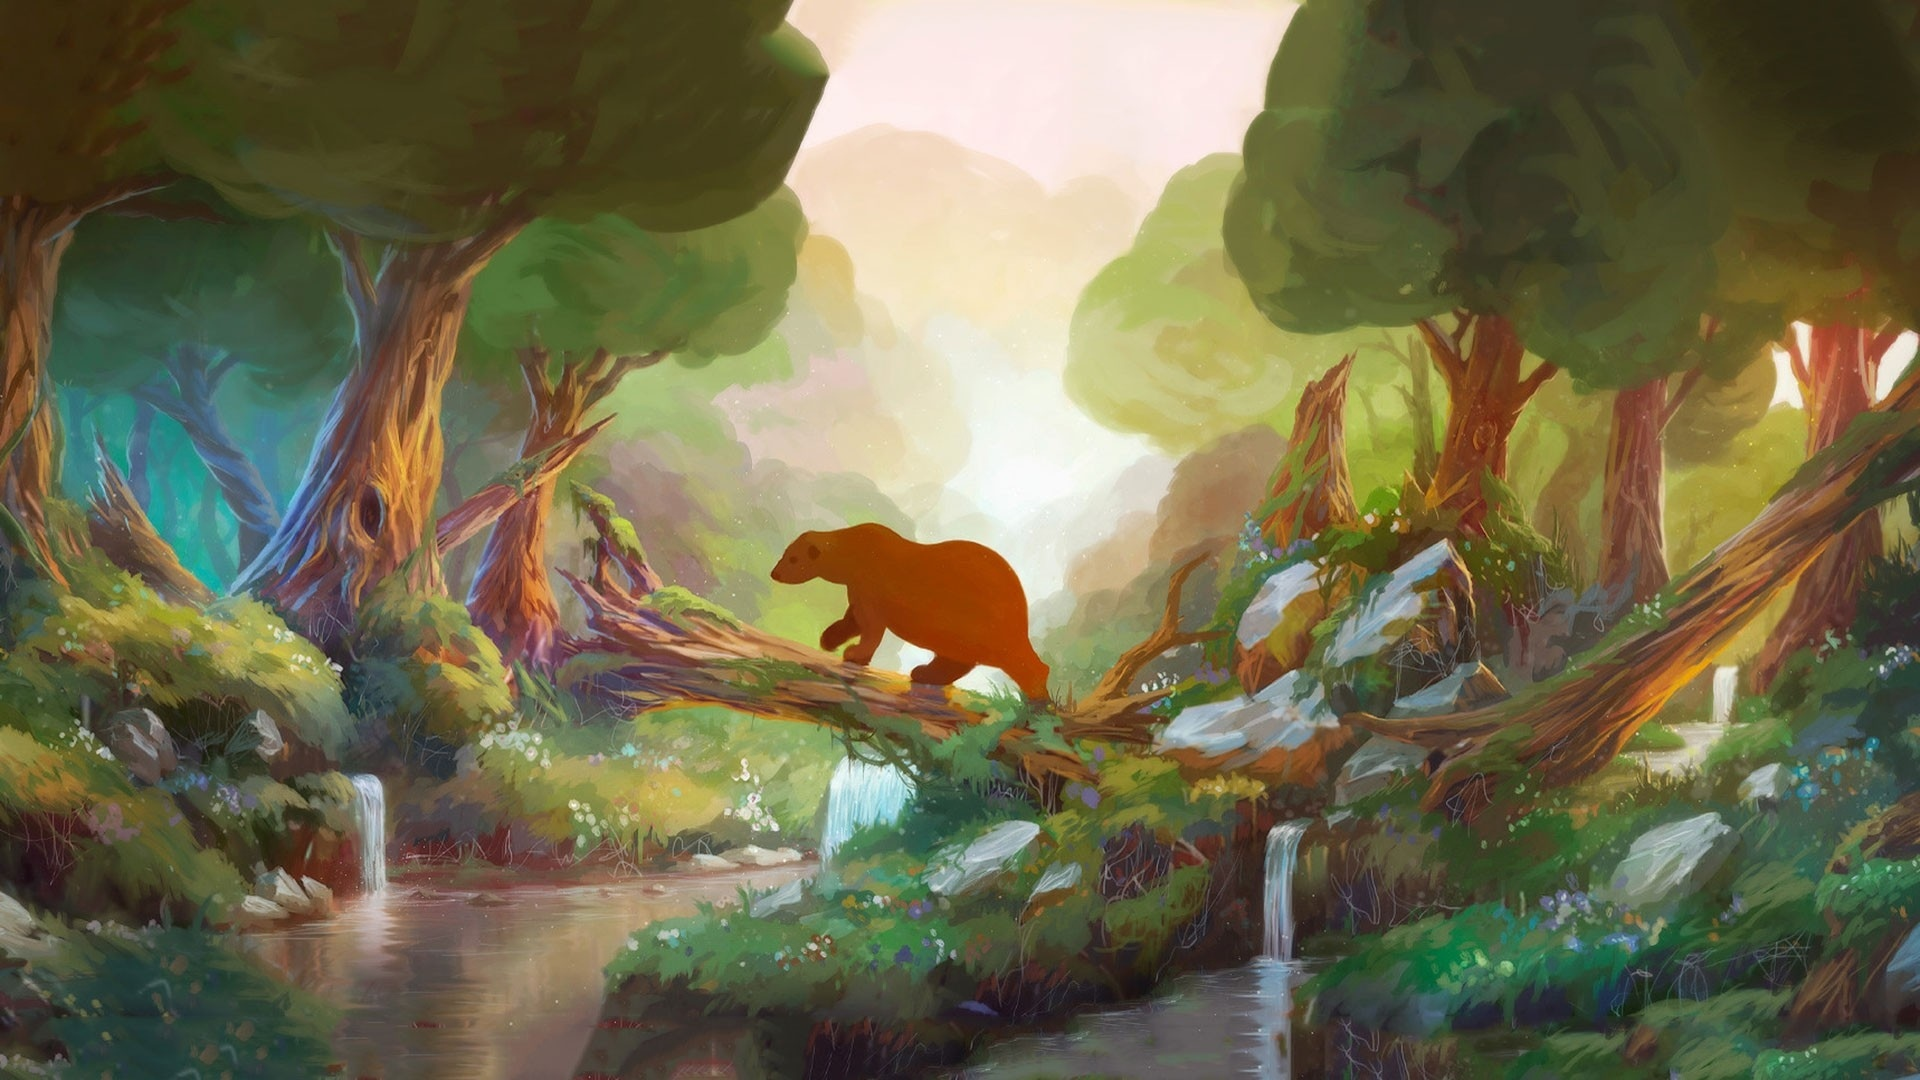 Anime cartoon fantasy children kids art paintings animals bears